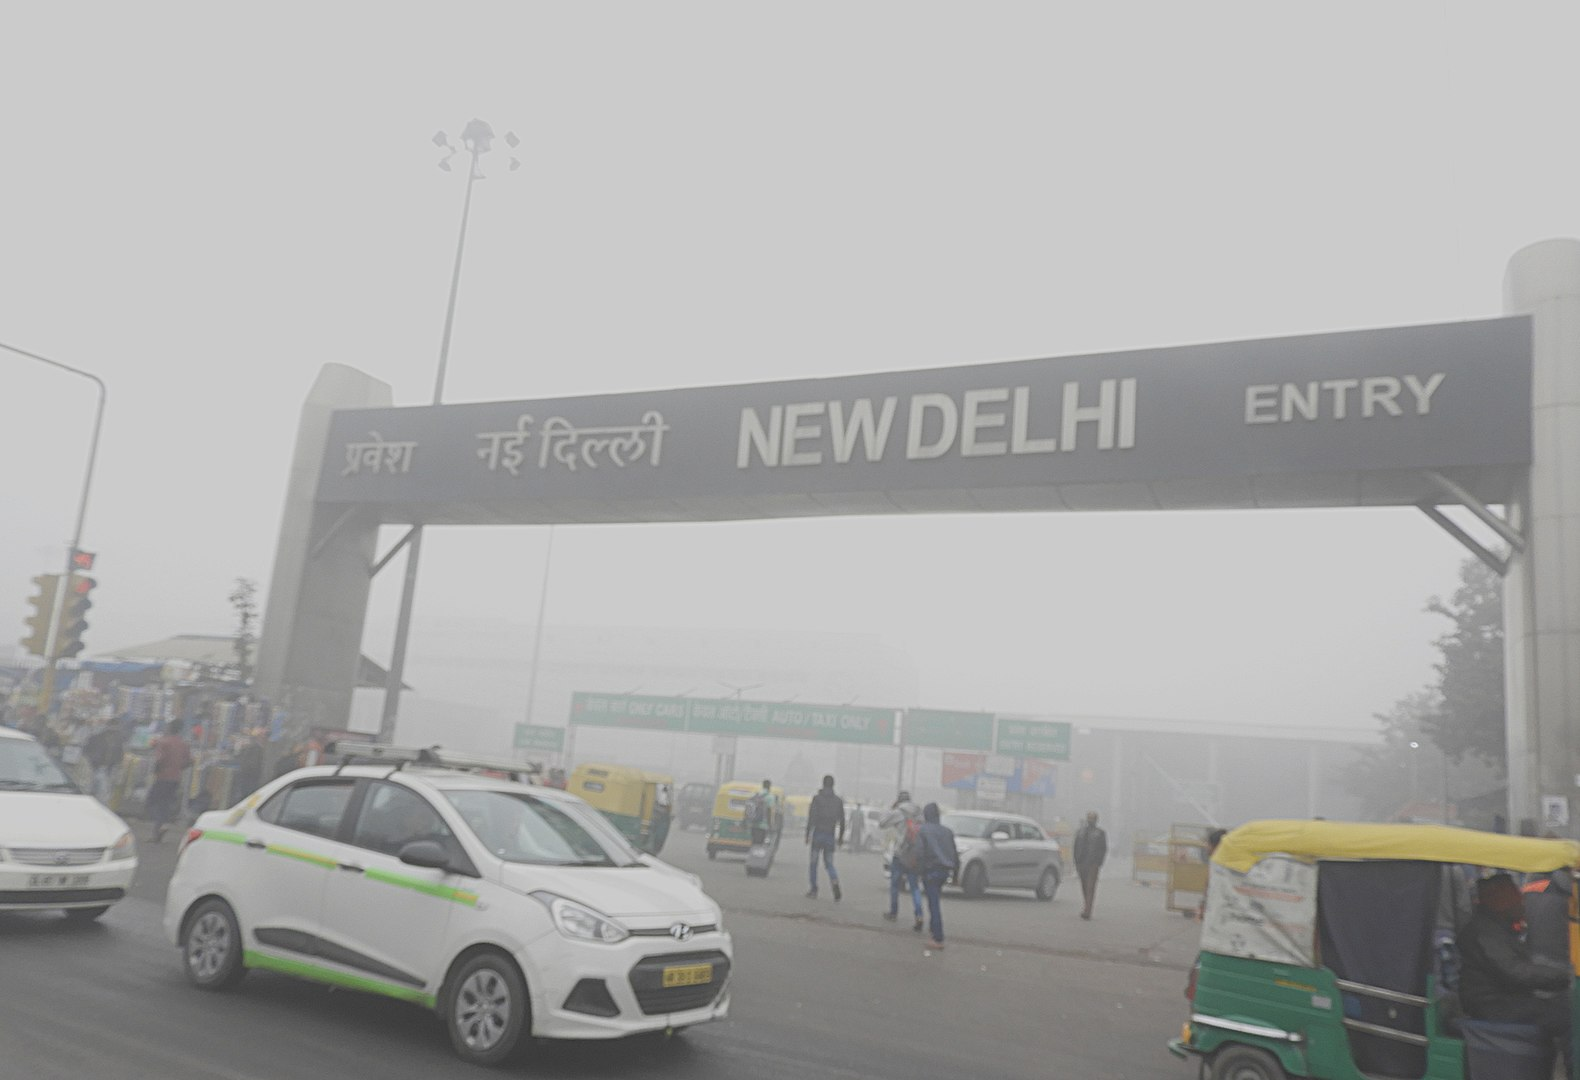 Air pollution in New Delhi